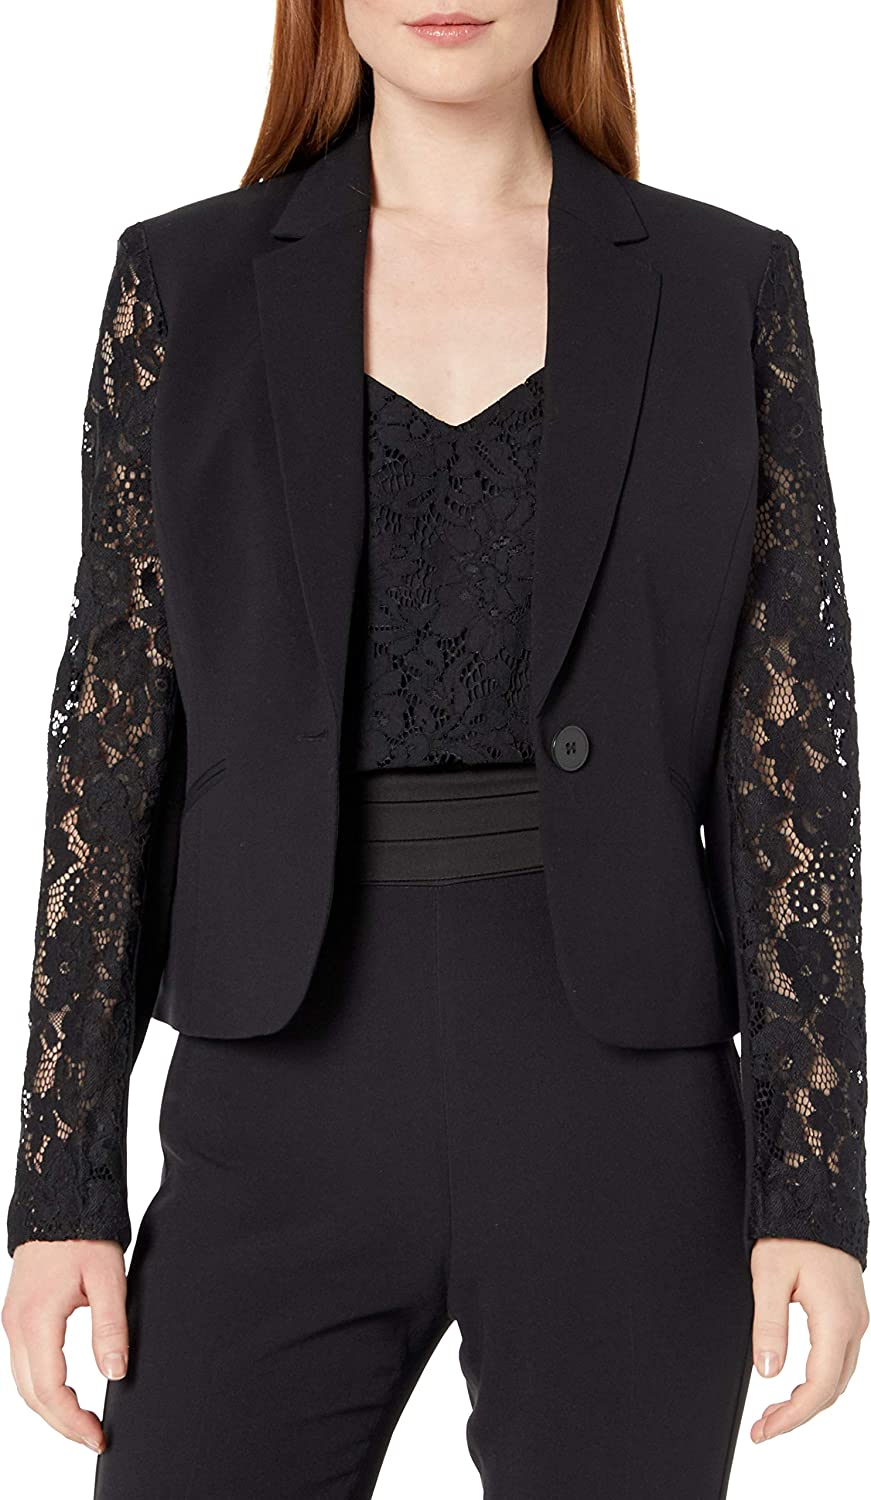 NINE WEST Women's Solid Crepe Sleeves Jacket Lace free Nashville-Davidson Mall shipping with